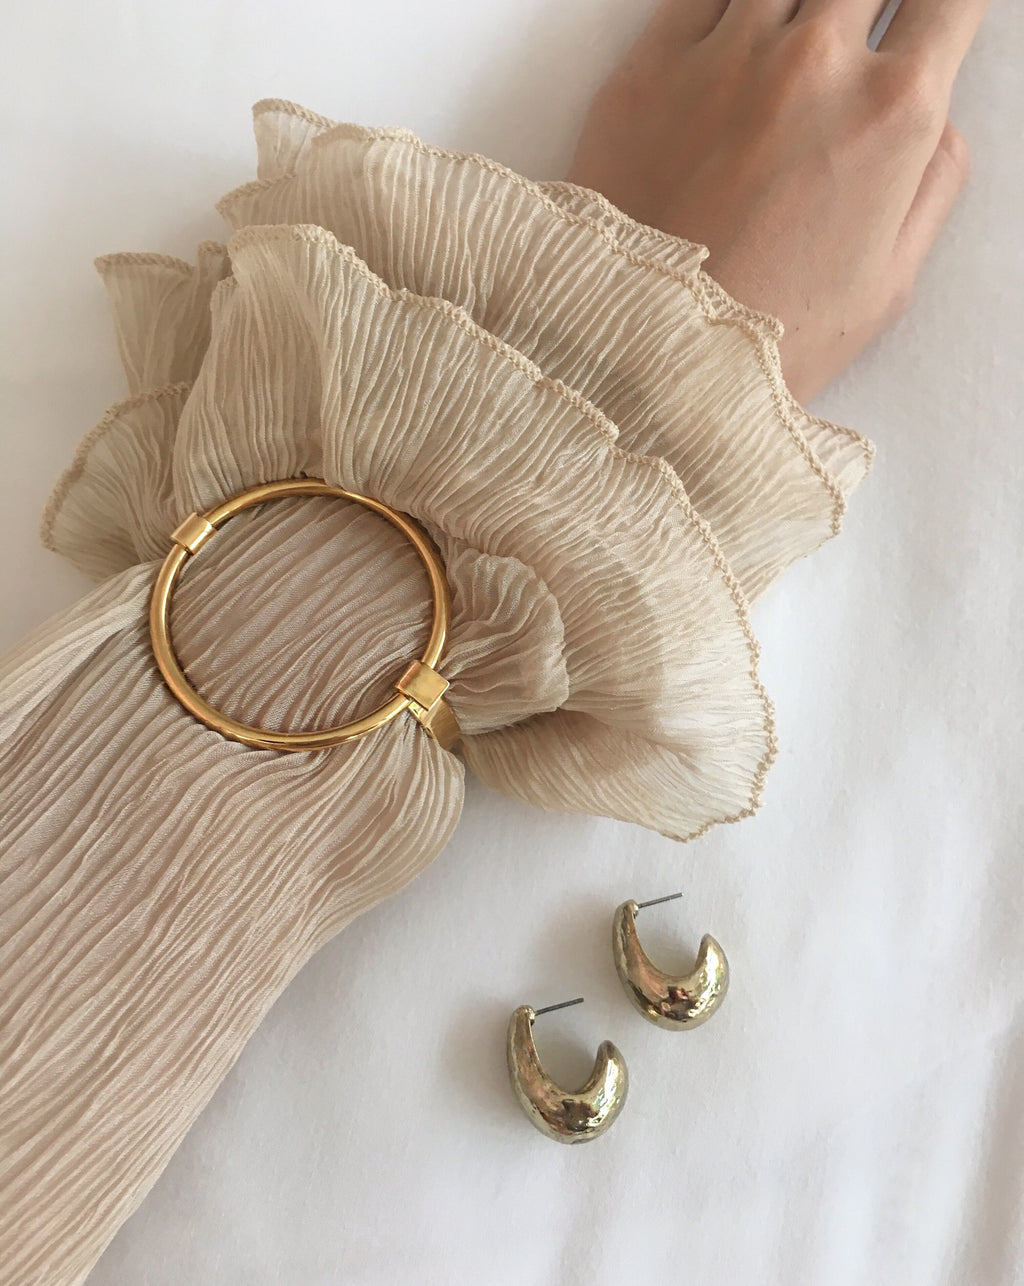 Fabienne Circle Bangle styled with a vintage pleated crepe beige color blouse - The Hexad Jewelry